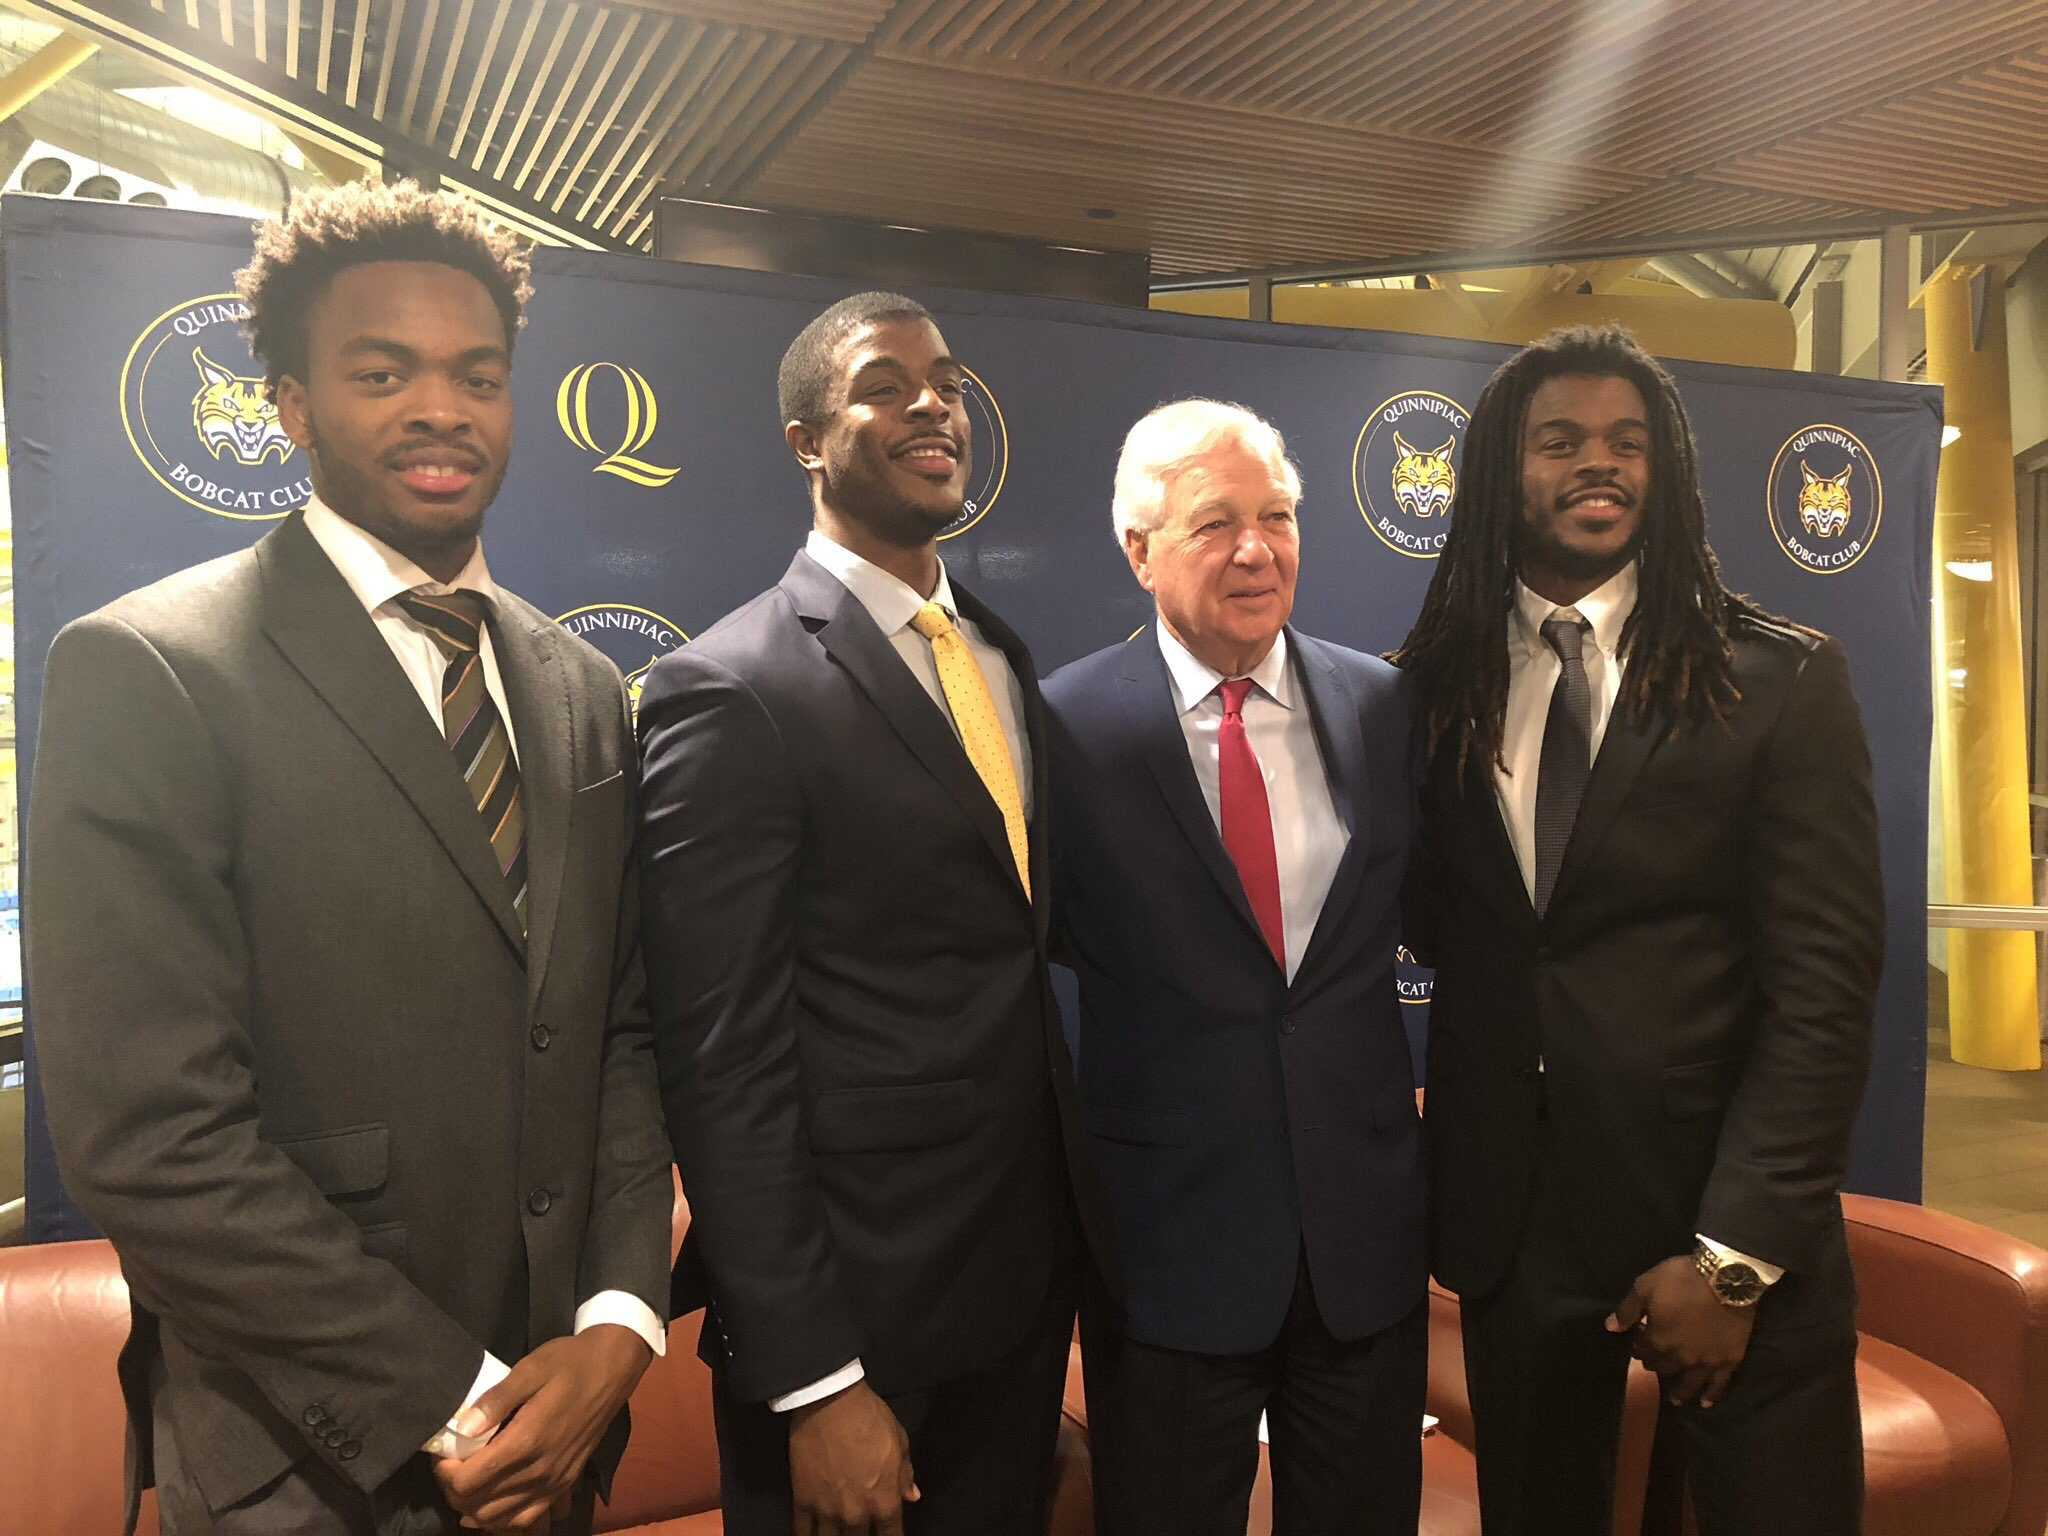 Bobcat Club hosts inaugural Quinnipiac Basketball Tip Off Reception